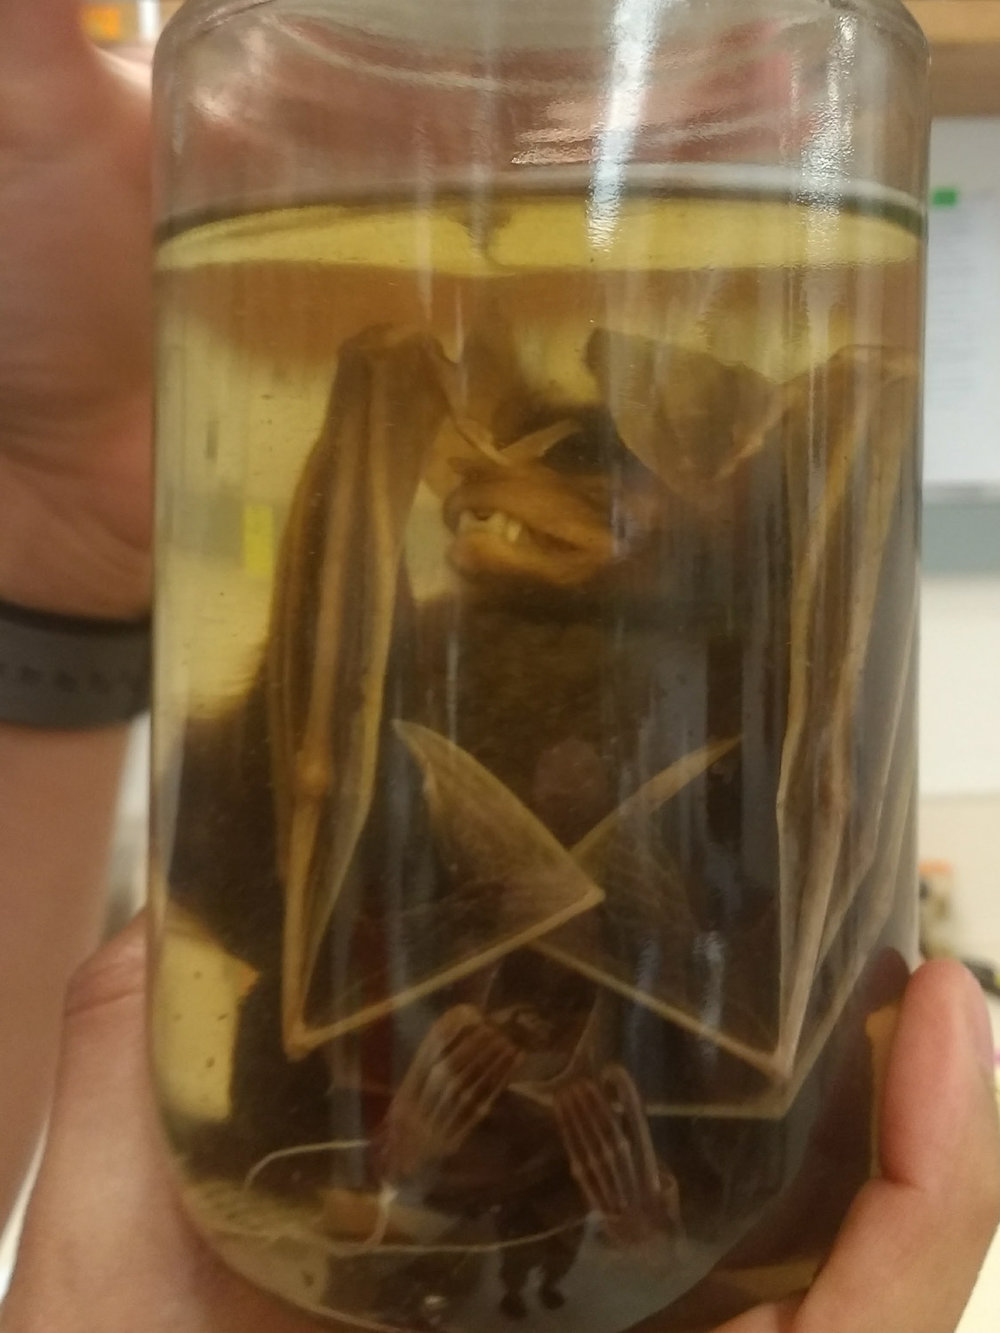 The preserved body of a Big-eared woolly bat